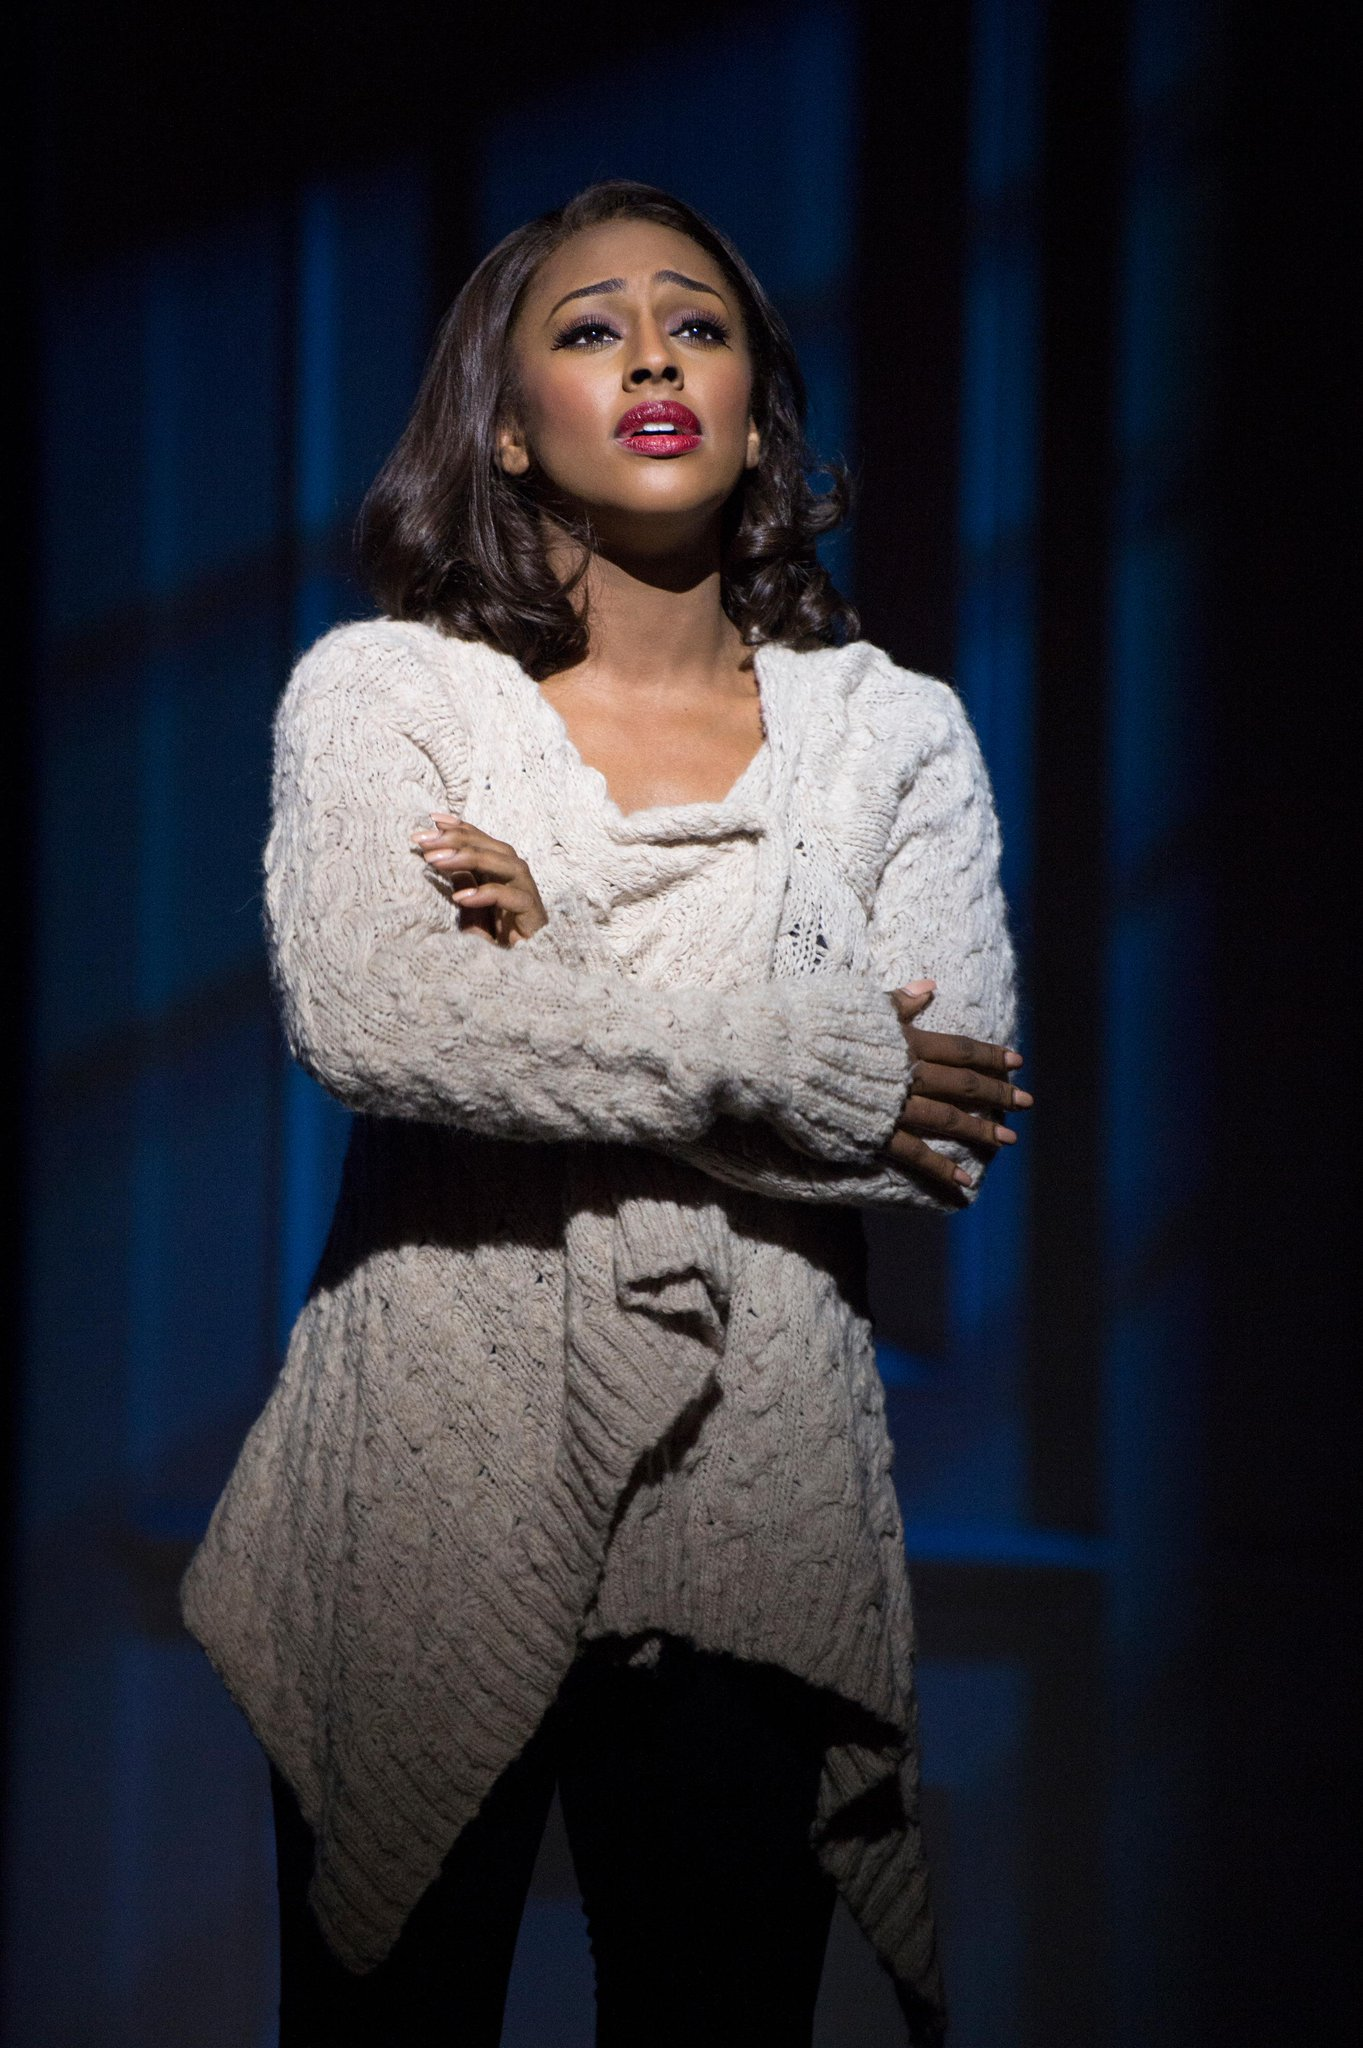 RT @TheBodyguardUK: Check out @ArtsSceneWales review of @alexandramusic and #TheBodyguardTour cast at @theCentre: http://t.co/bgiZ1W3kEY h…